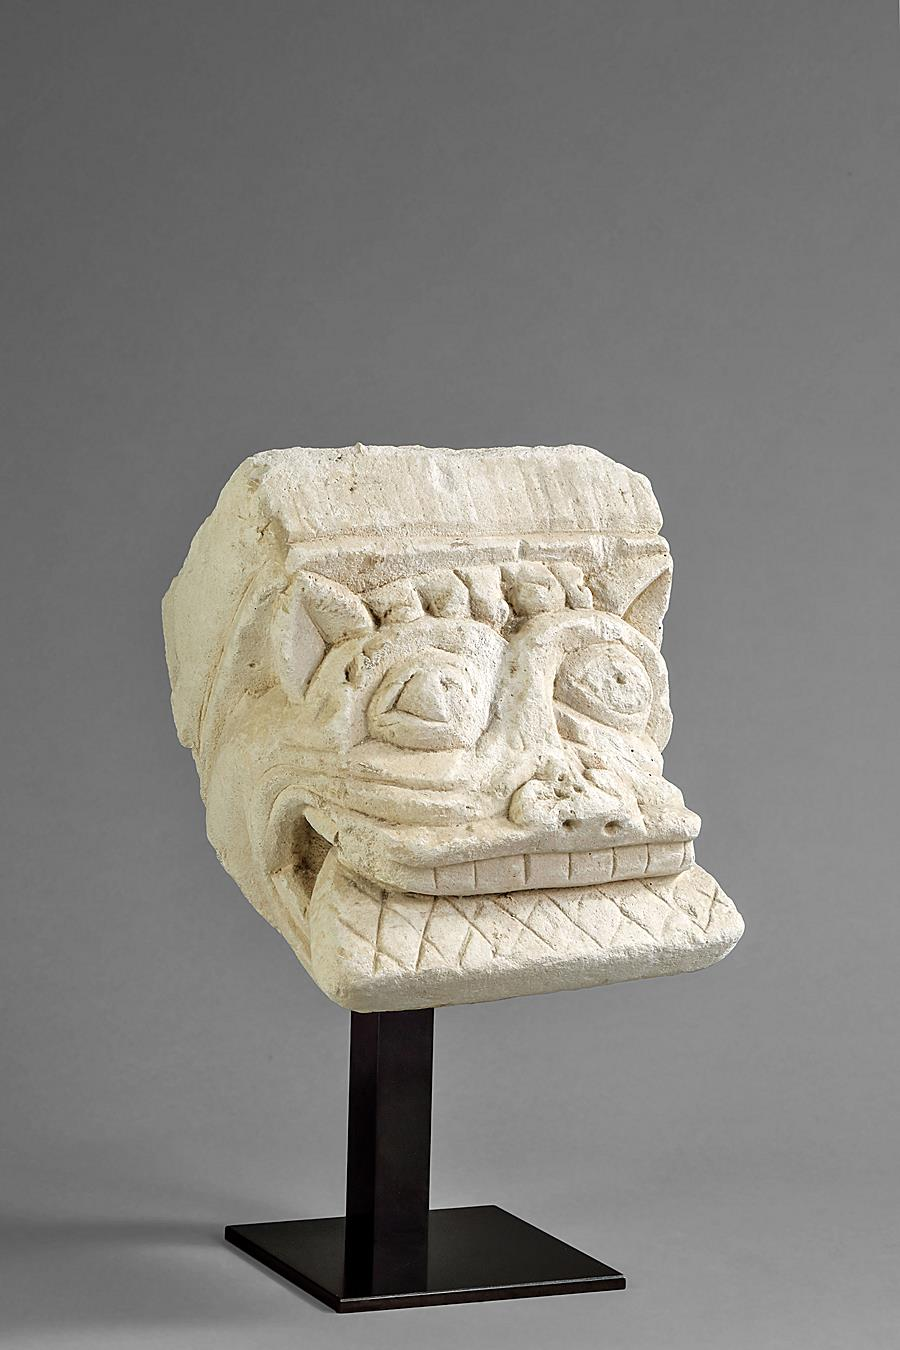 ROMANESQUE CORBEL WITH A MONSTER-LIKE HEAD